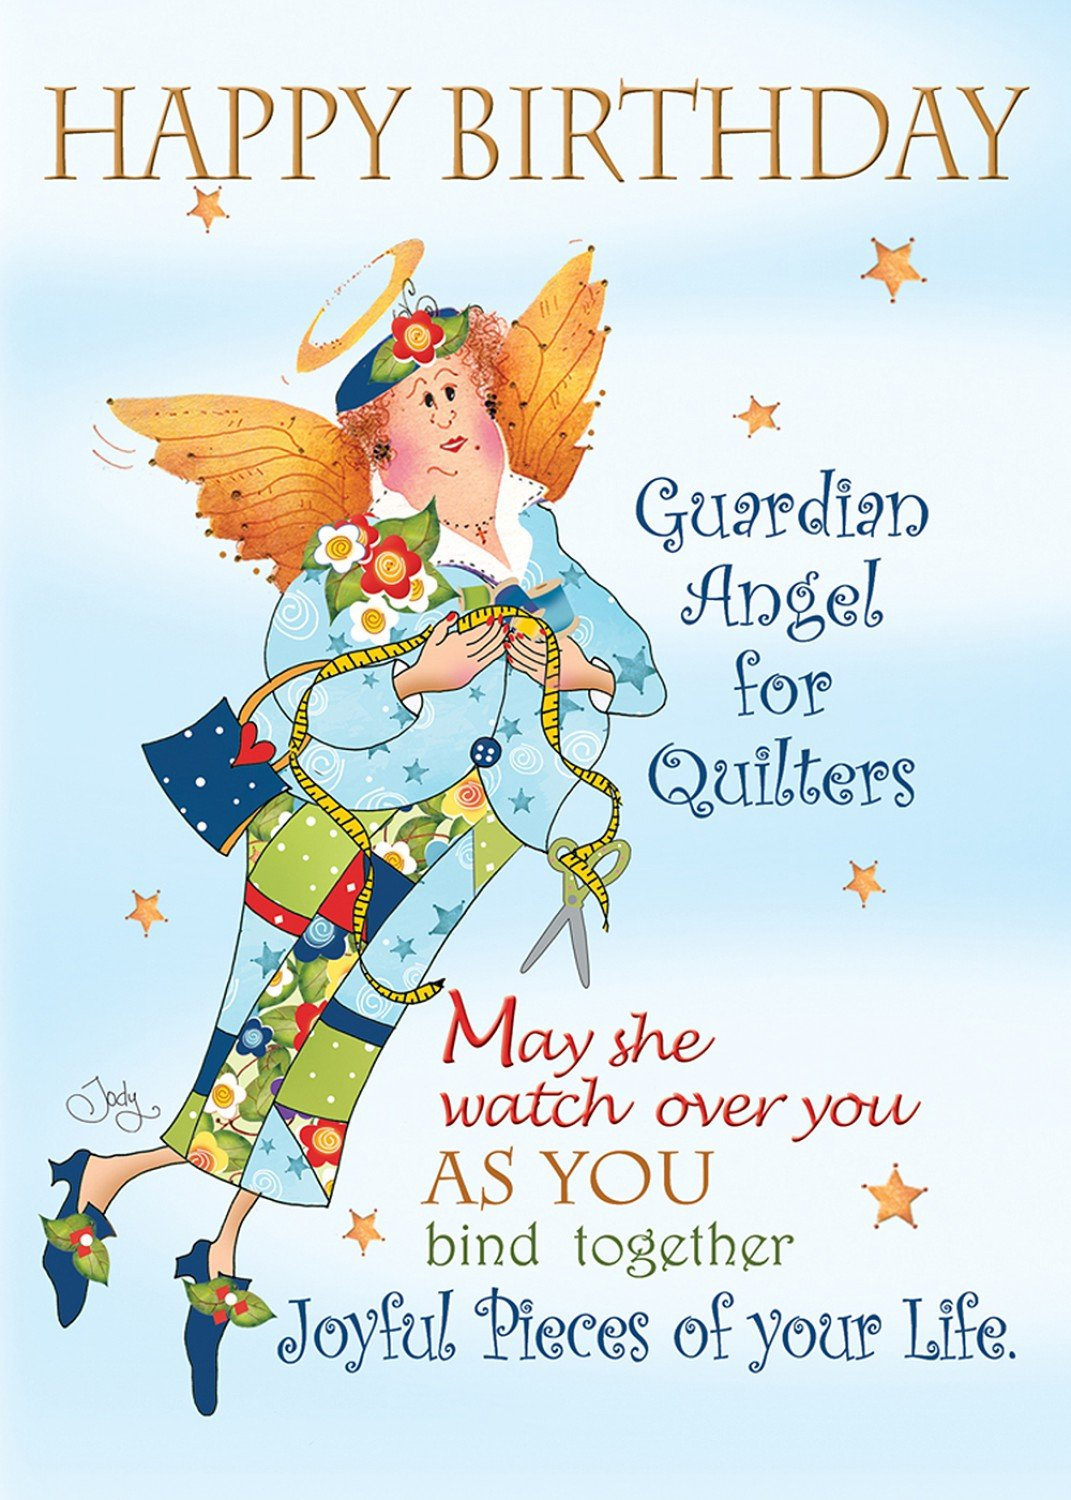 Birthday Card - Guardian Angel